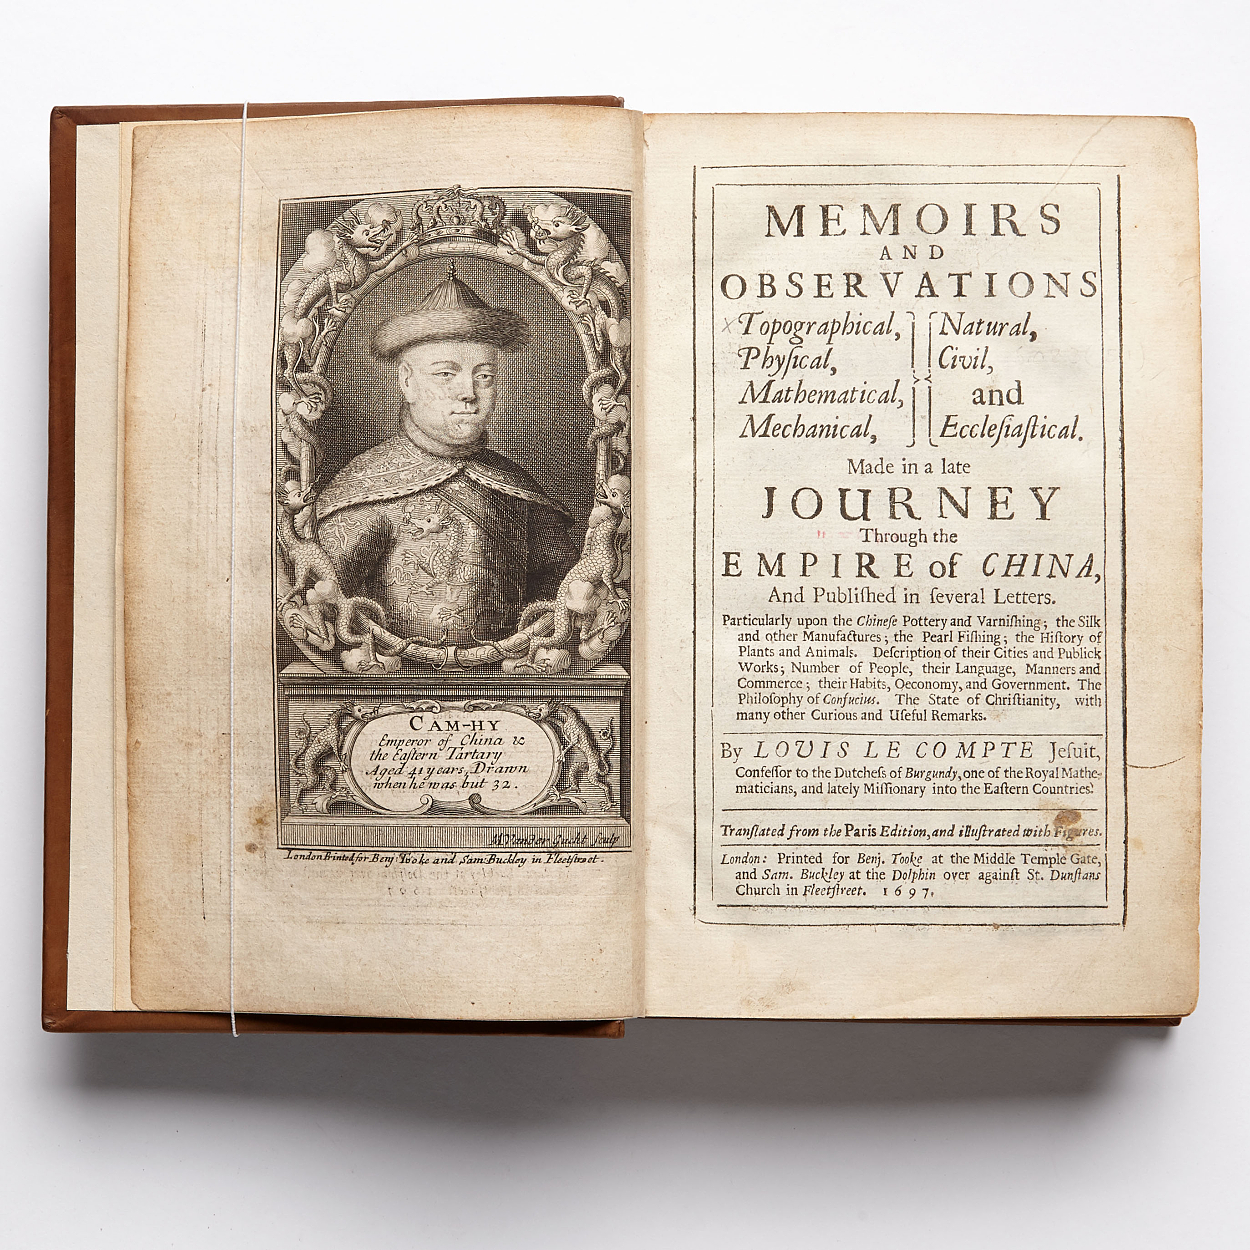 Le Comte's travels in China late 17th century